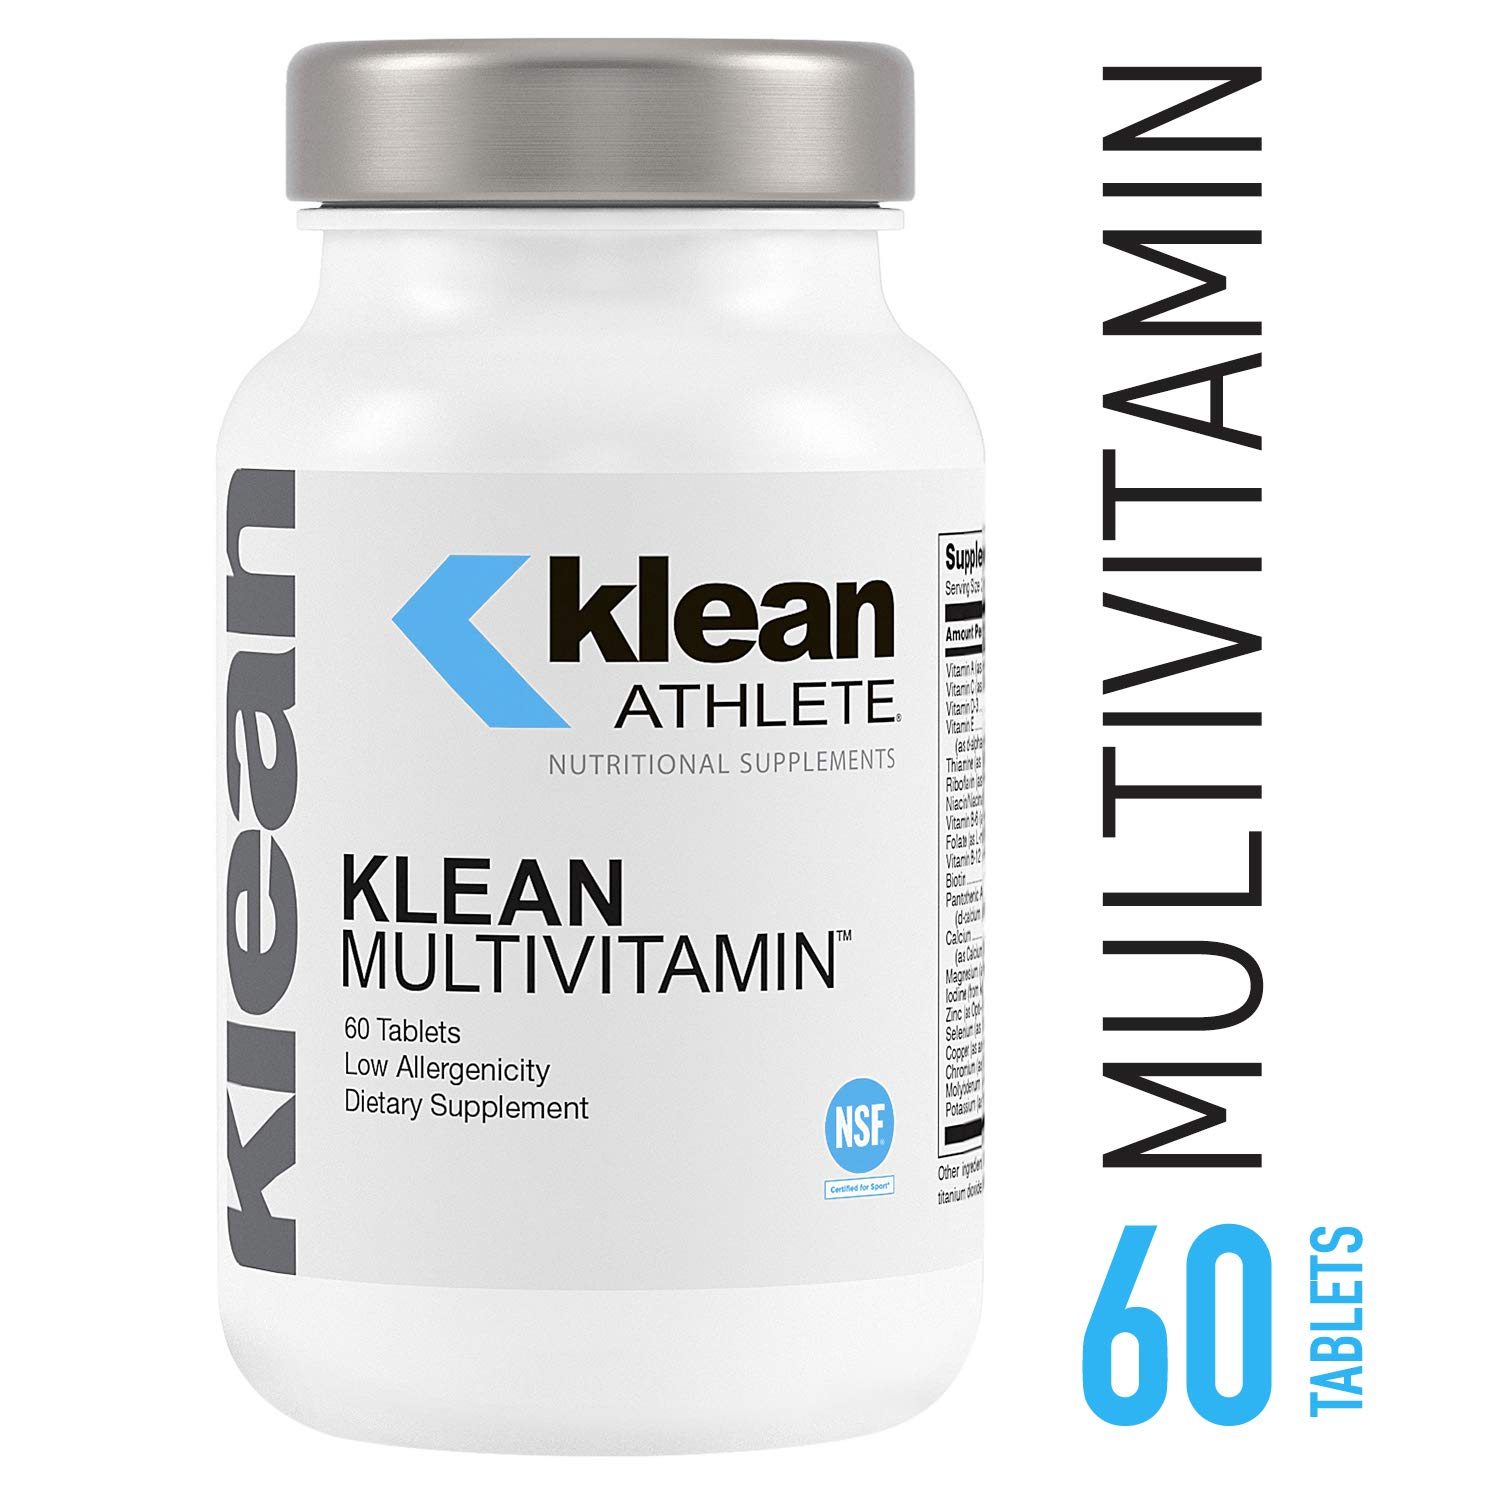 Klean Athlete – Klean Multivitamin – Essential Nutrients and Antioxidants for Optimal Health and Performance* – NSF Certified for Sport – 60 Tablets